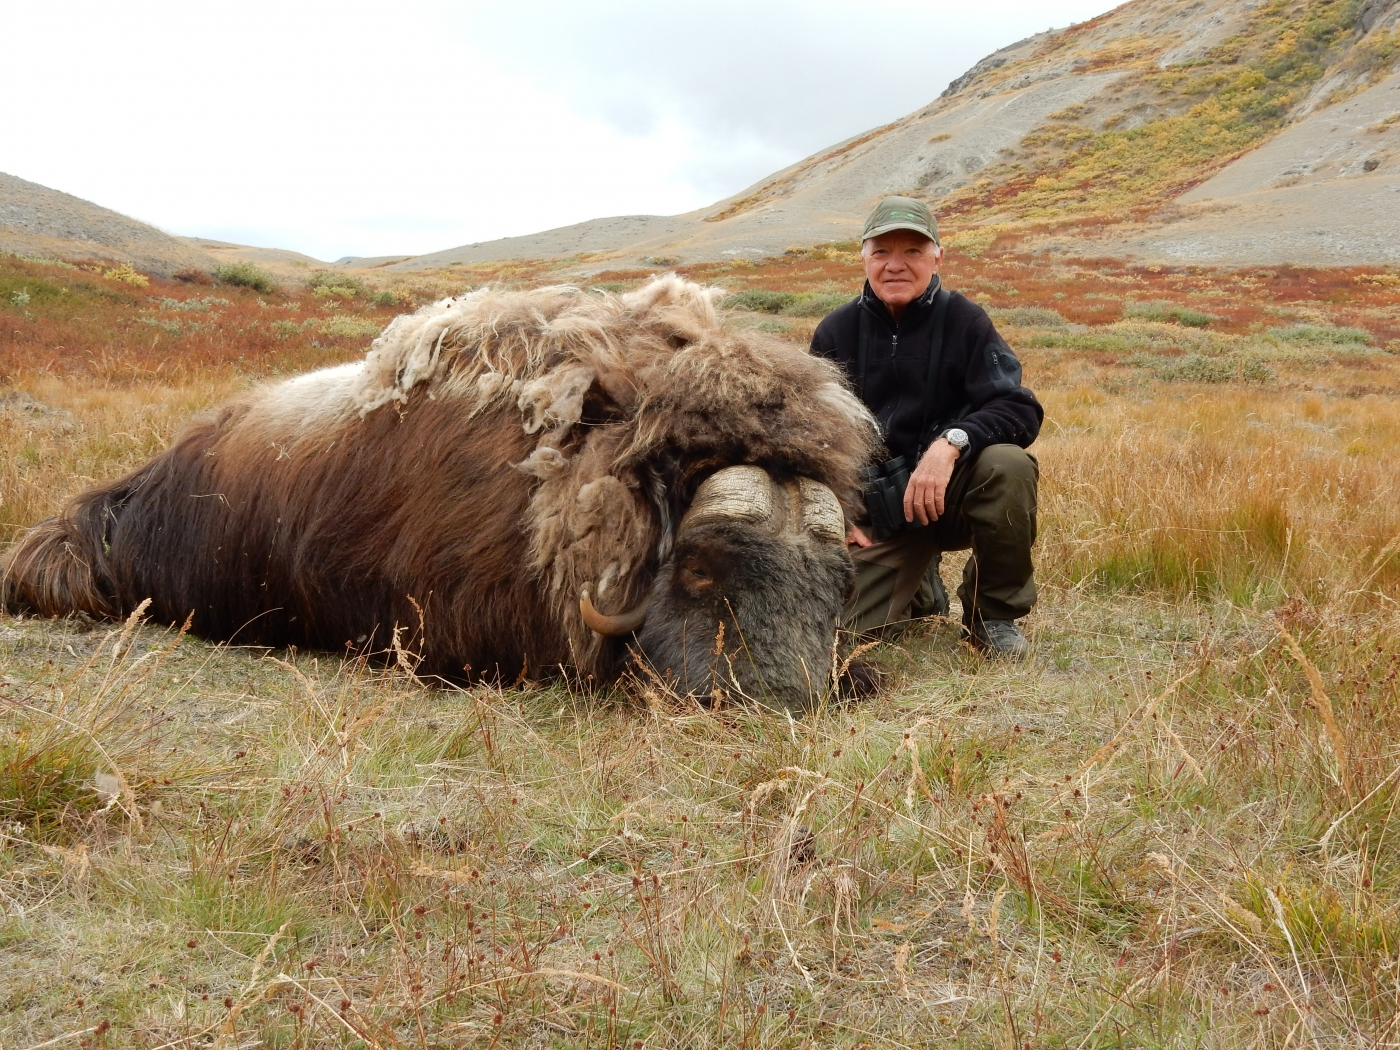 Musk ox in green landscape. Photo by Trophy Hunting Greenland, Visit Greenland